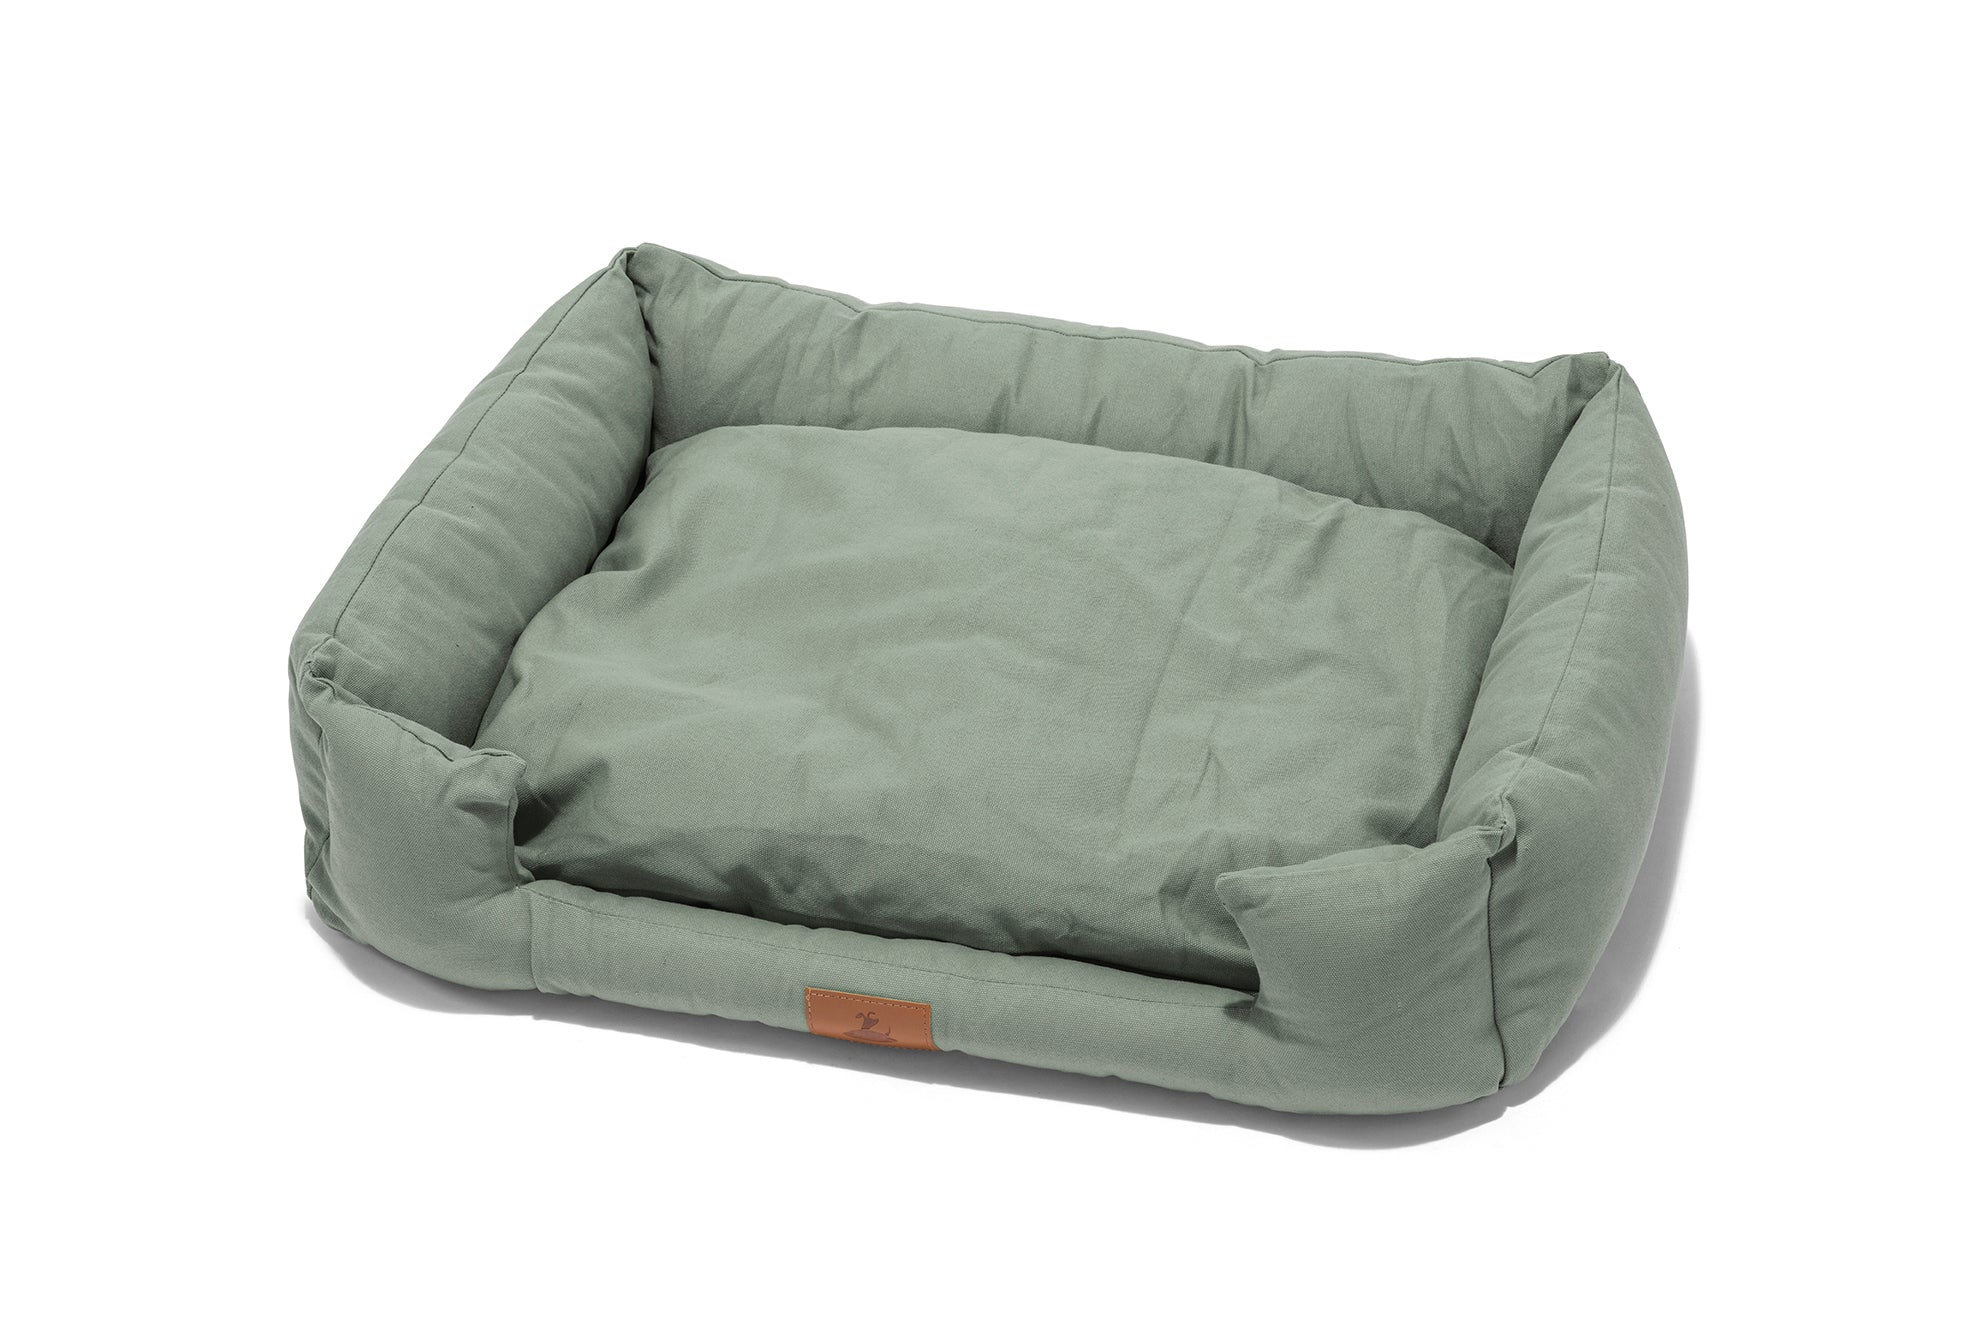 Lupo's Nest | Hypoallergenic Crib Dog Bed in Sage